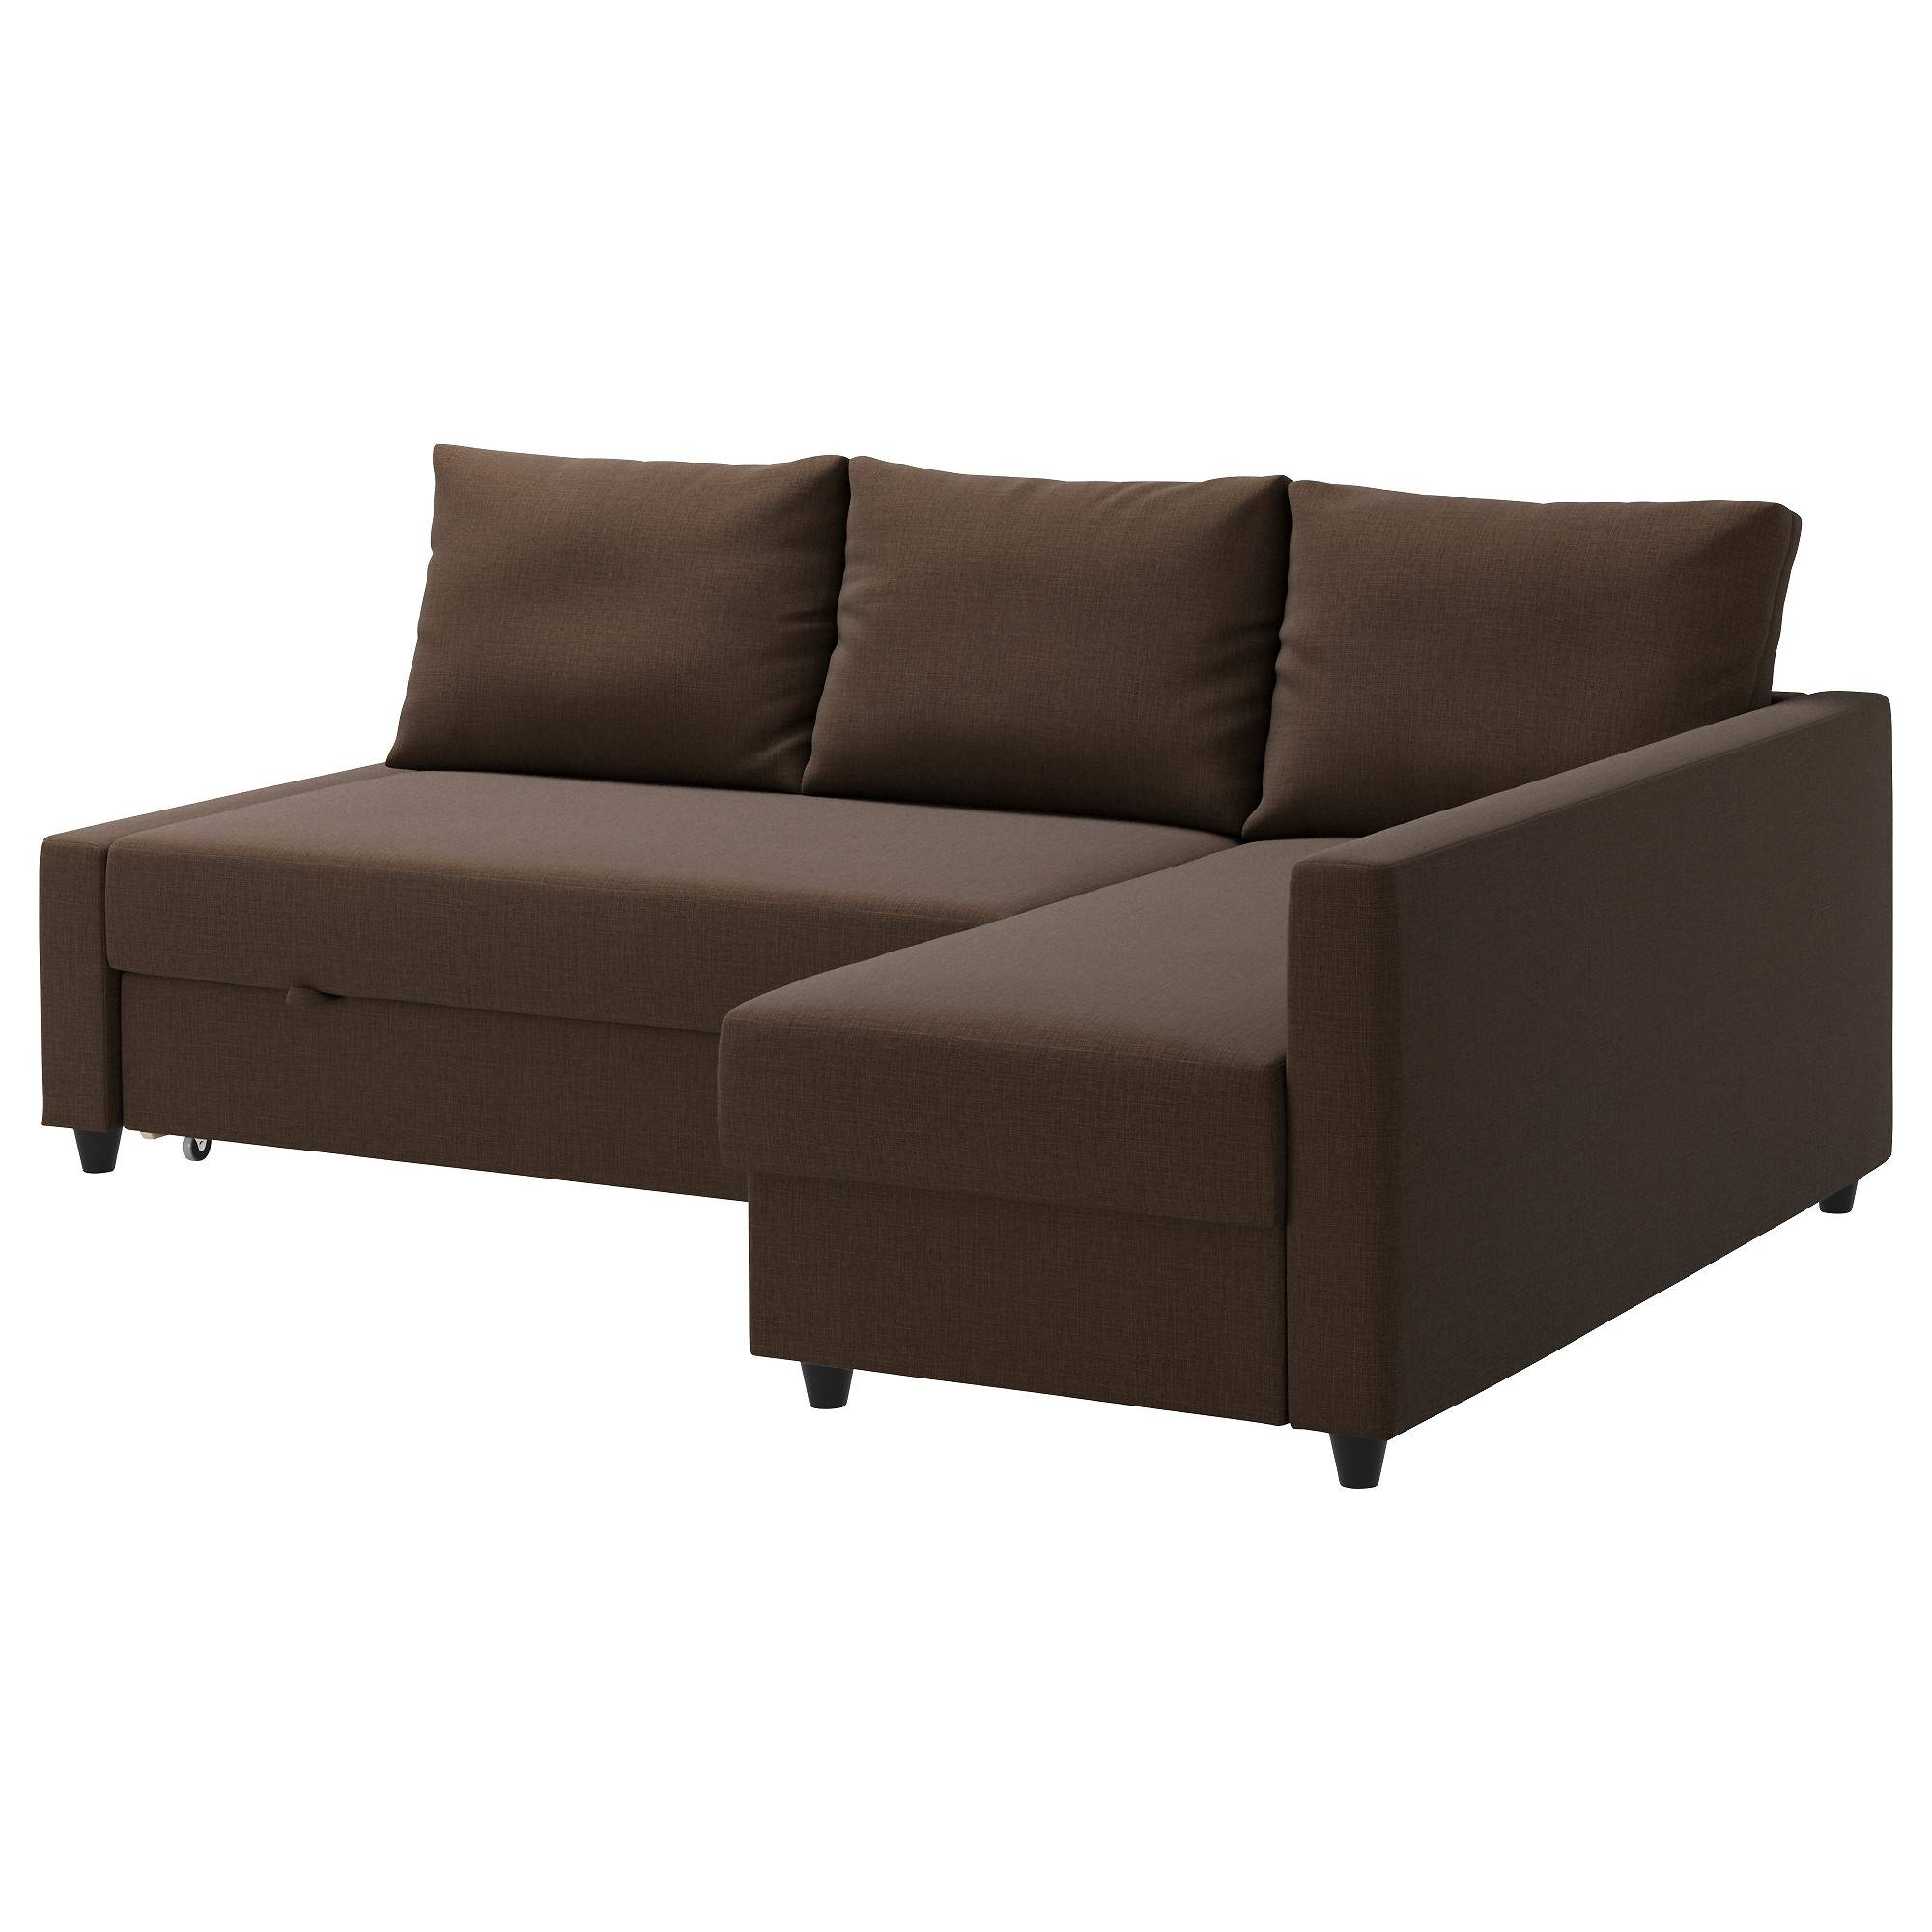 Friheten Sleeper Sectional,3 Seat W/storage - Skiftebo Dark Gray regarding Sofa Bed Sleepers (Image 6 of 30)